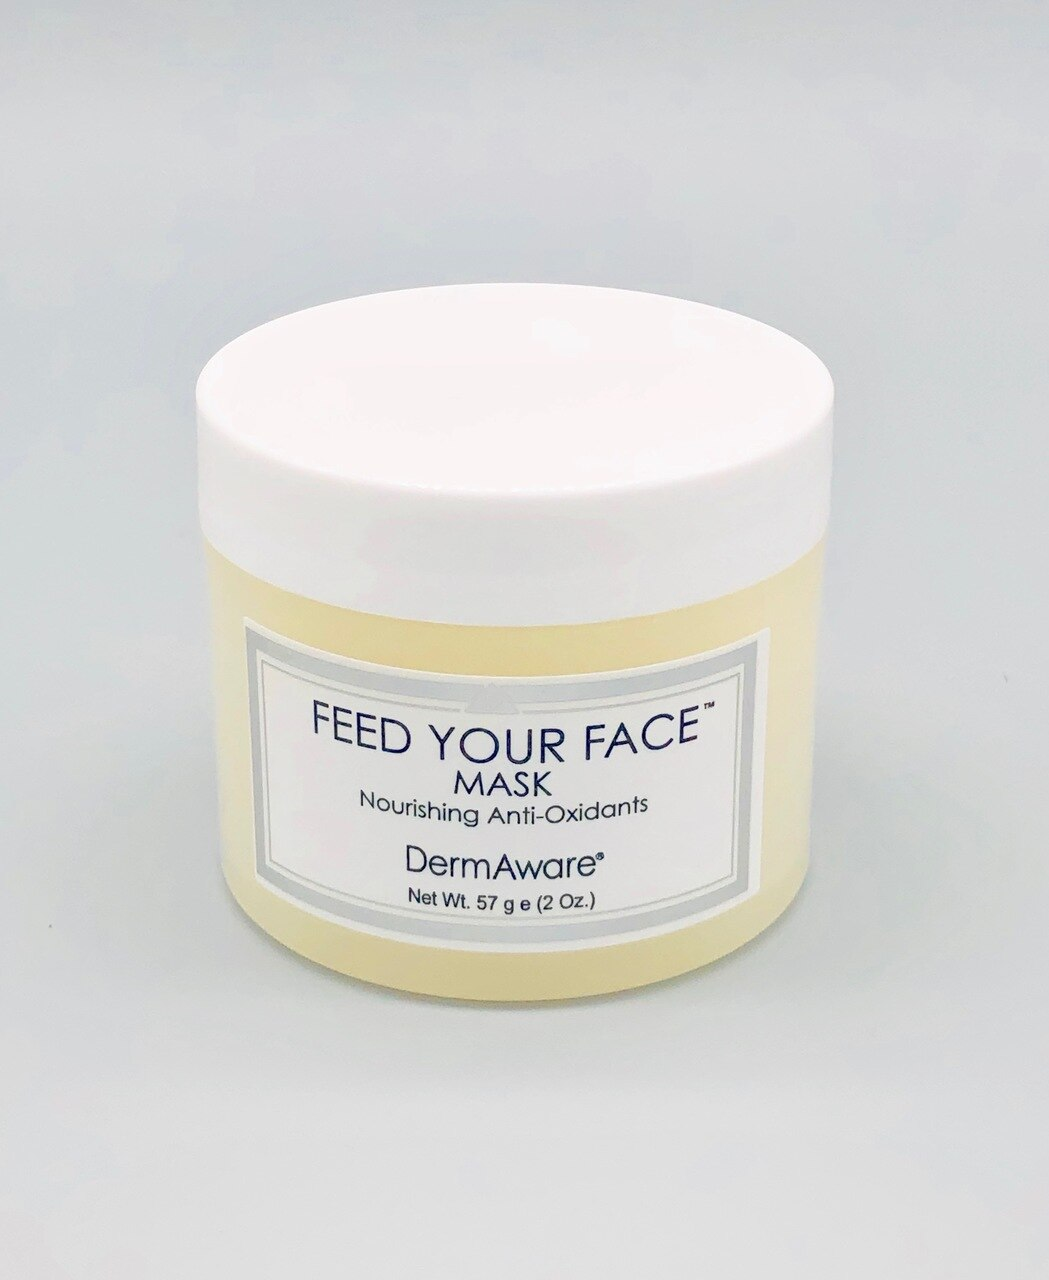 Feed Your Face Mask